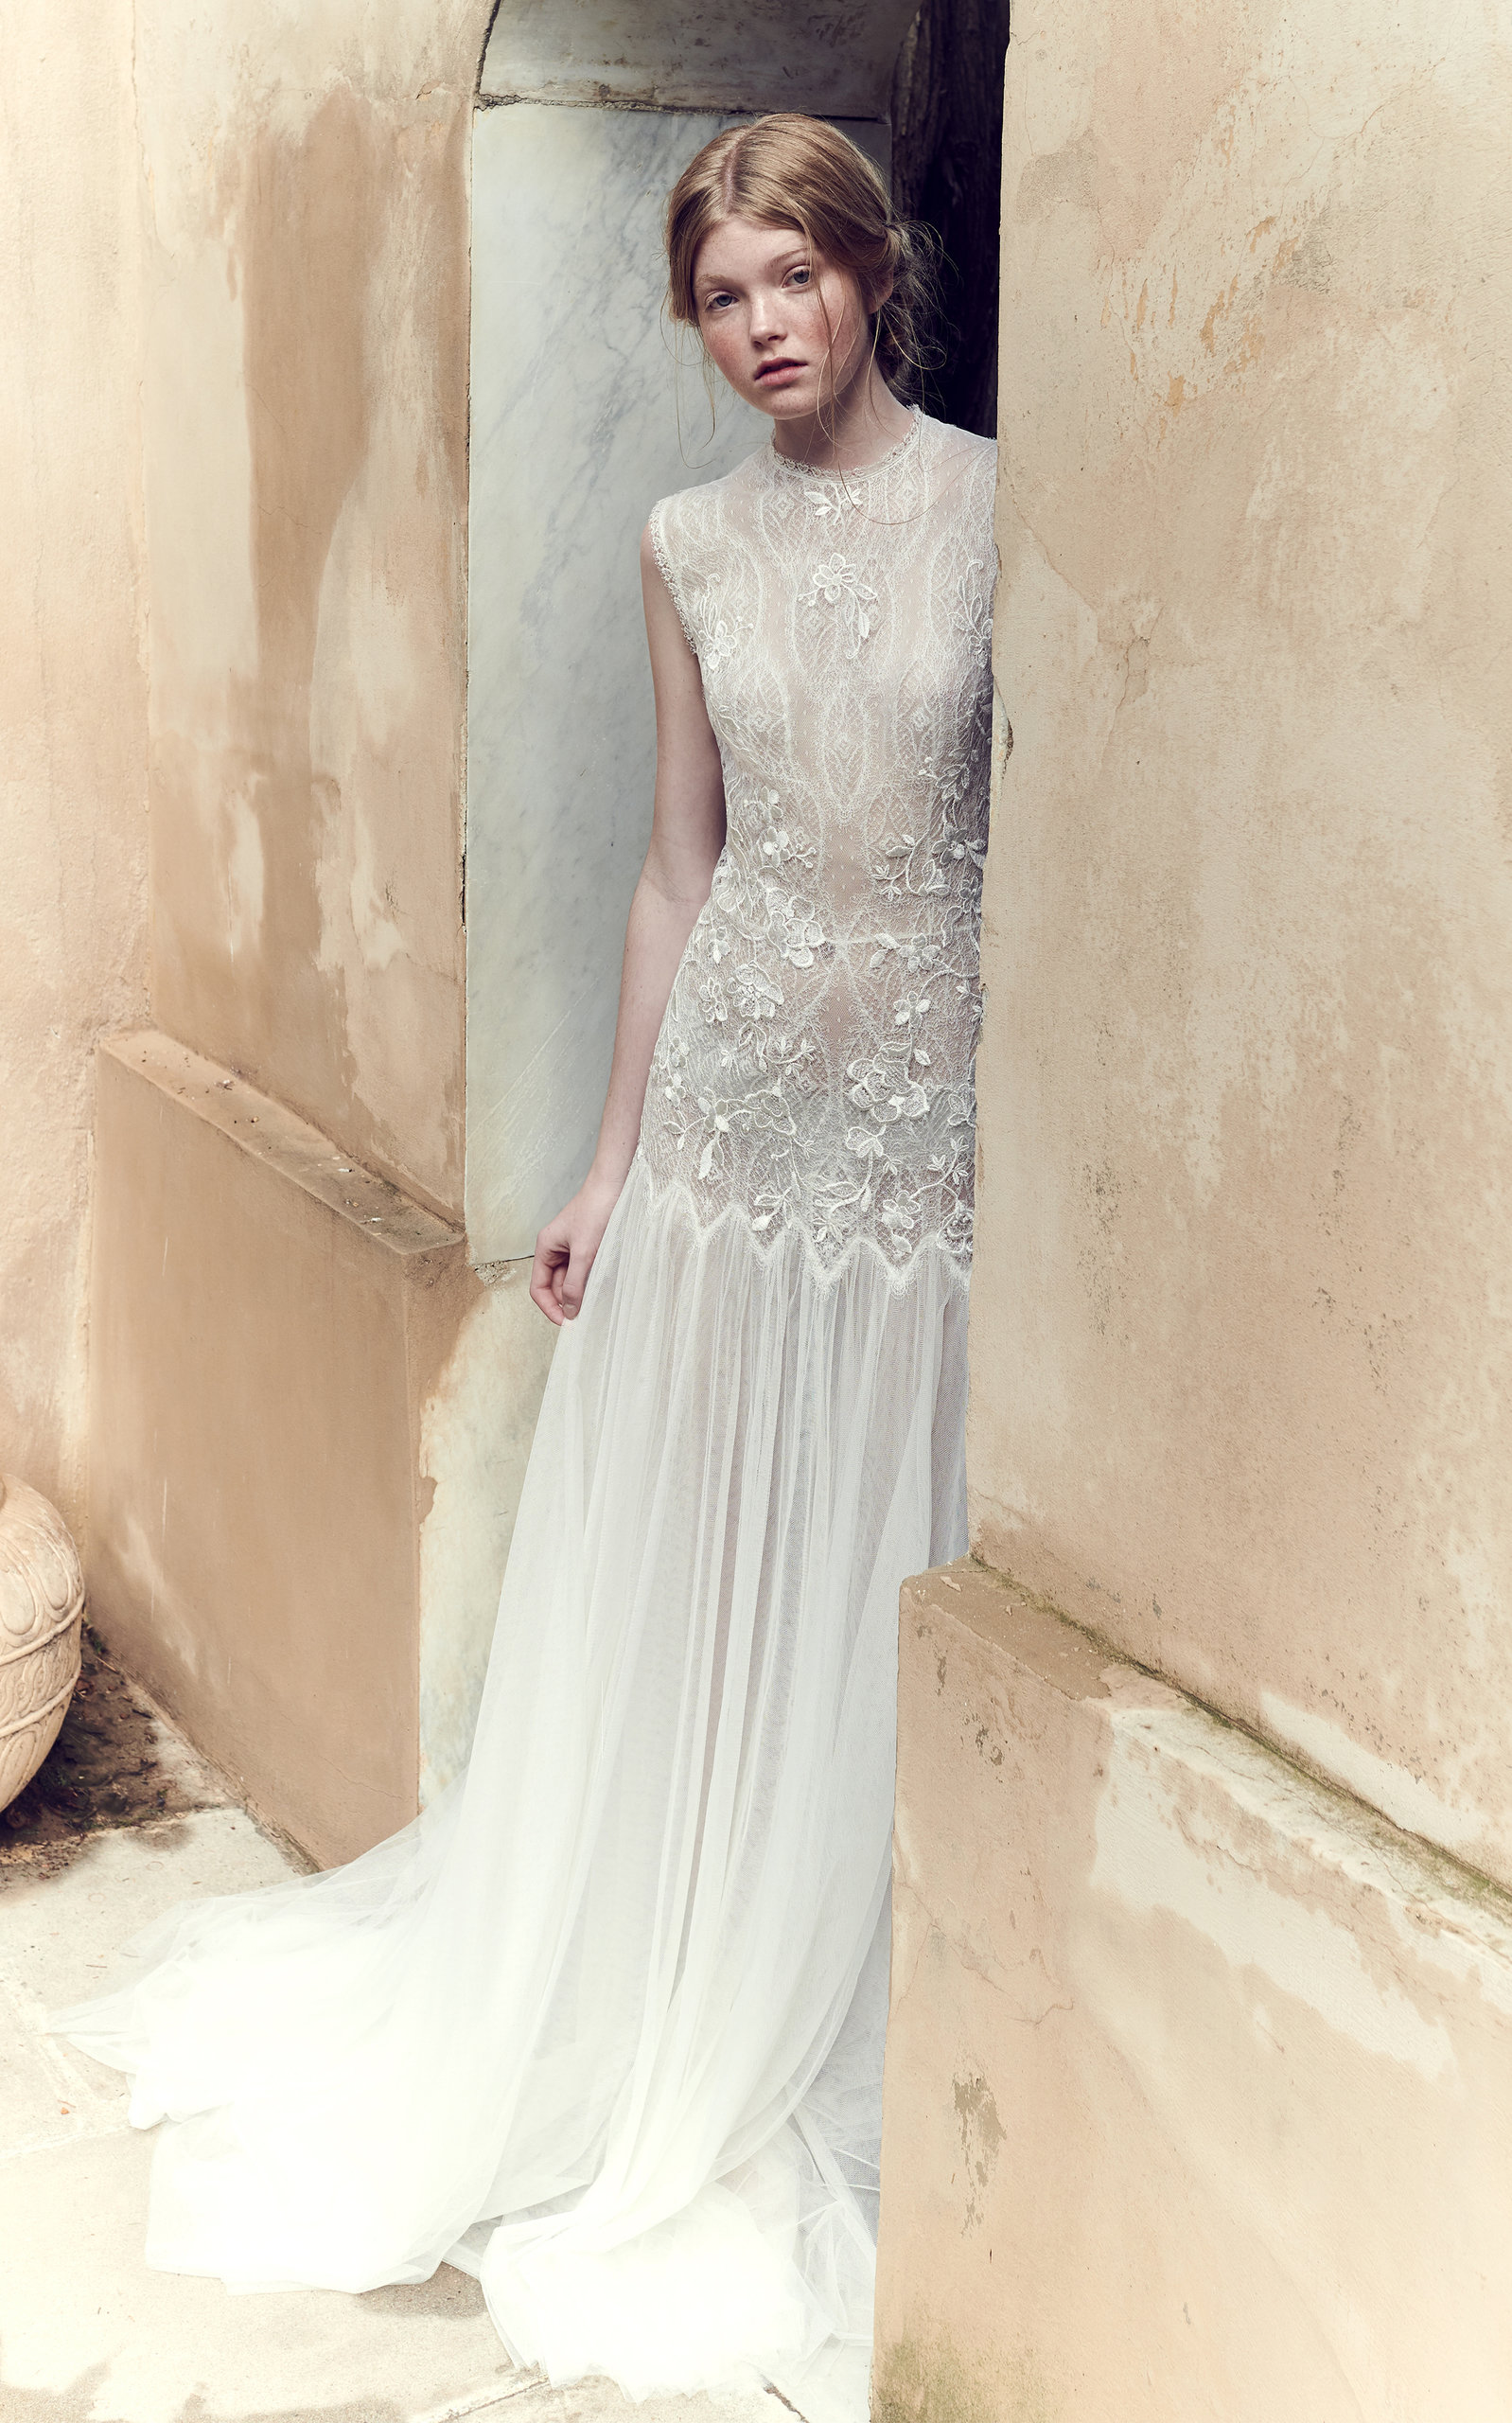 COSTARELLOS BRIDAL Low-Waist Mesh Lace Bodice And Tulle Gown in White